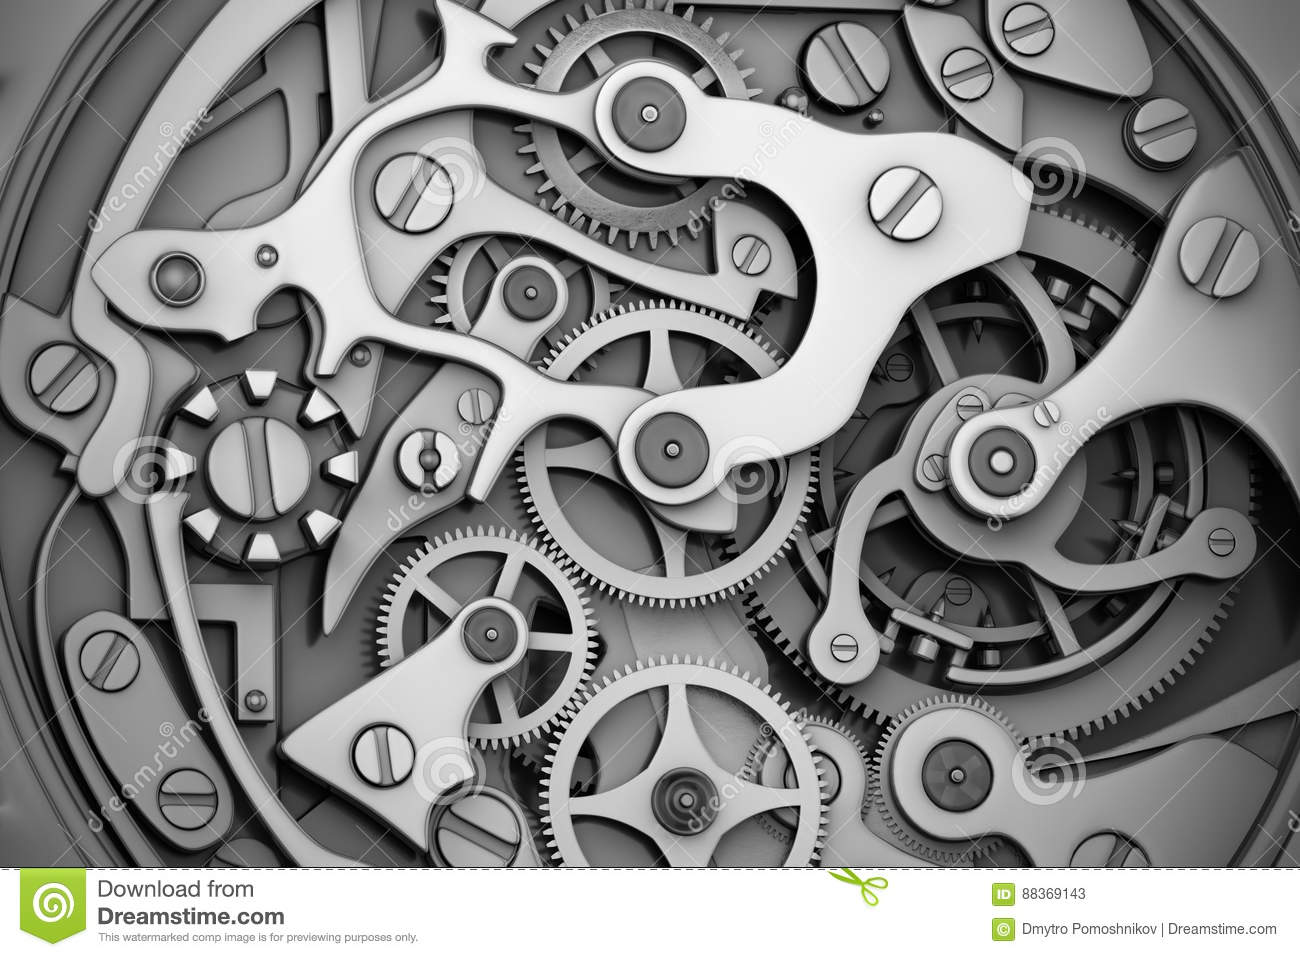 Watch Machinery With Gears Grayscale Stock Illustration ...